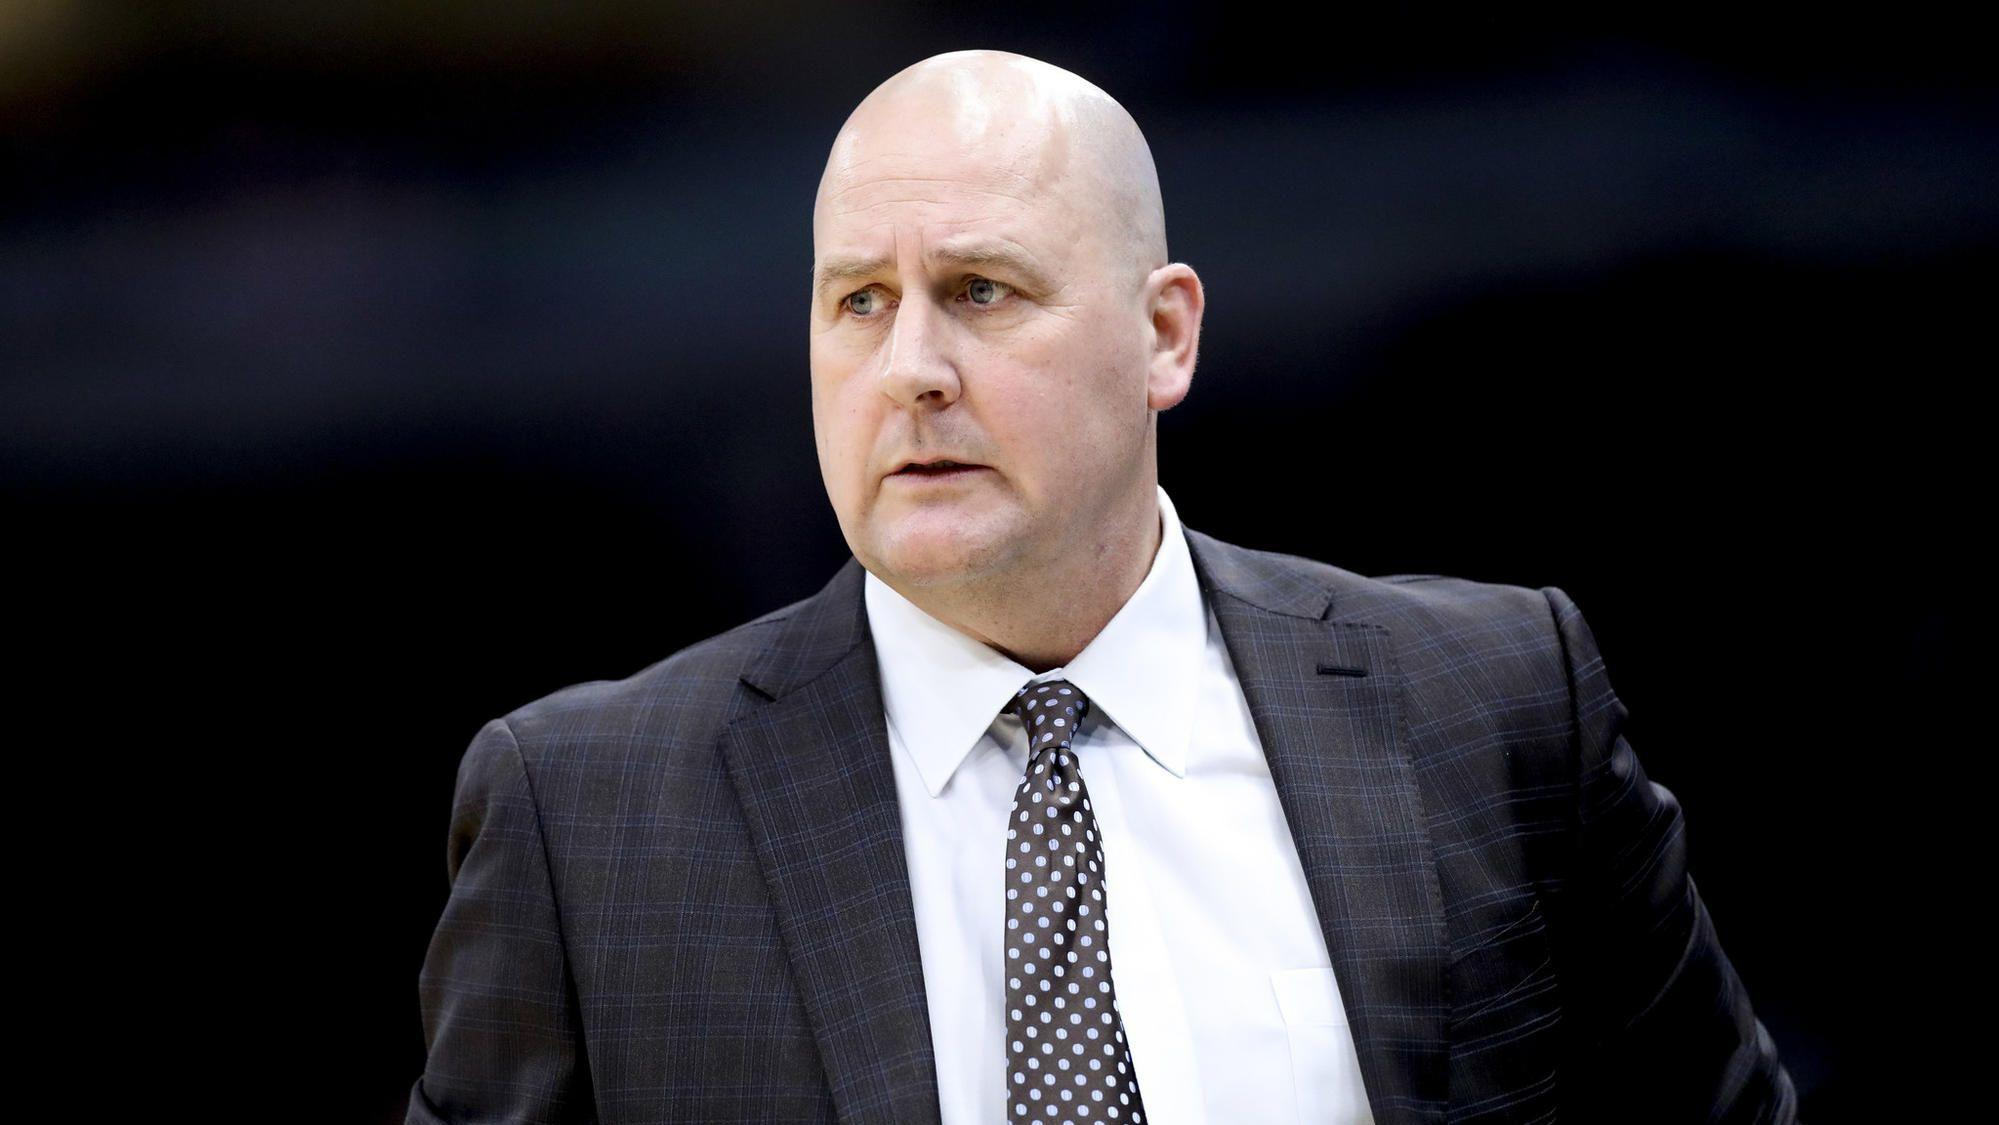 jim boylen - photo #3